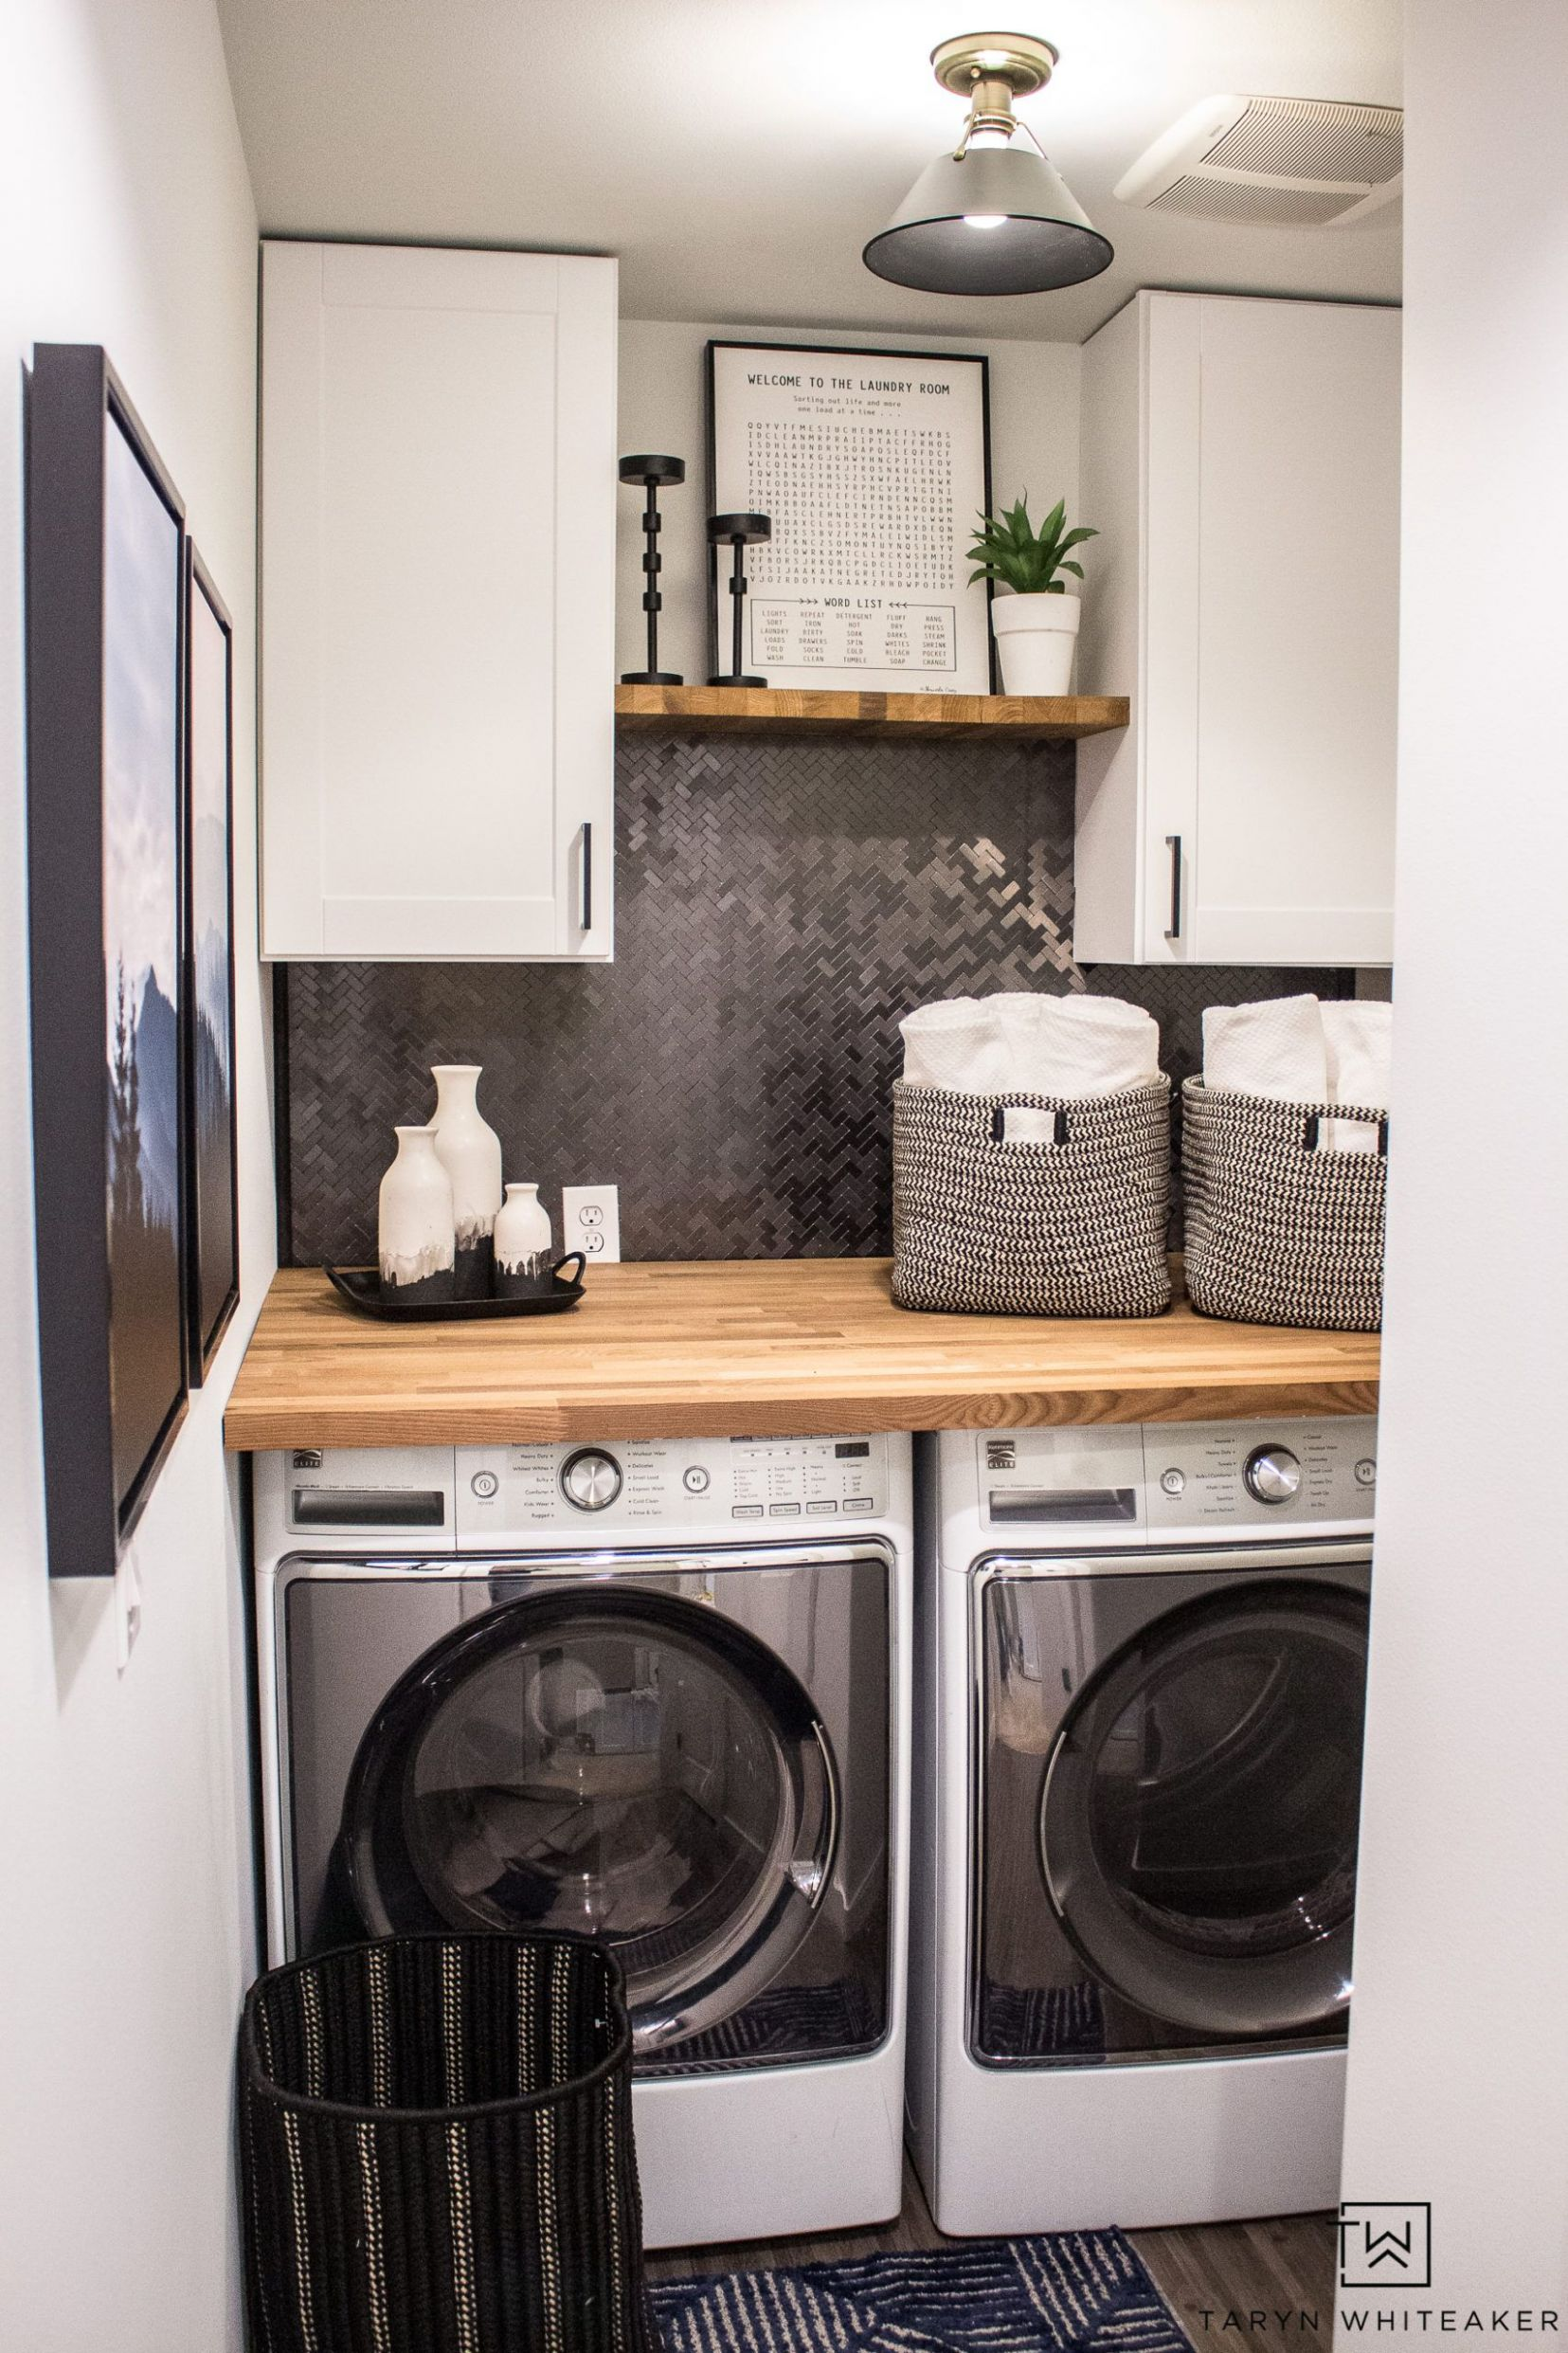 Small Laundry Room Makeover in 12 | Small laundry room makeover ..